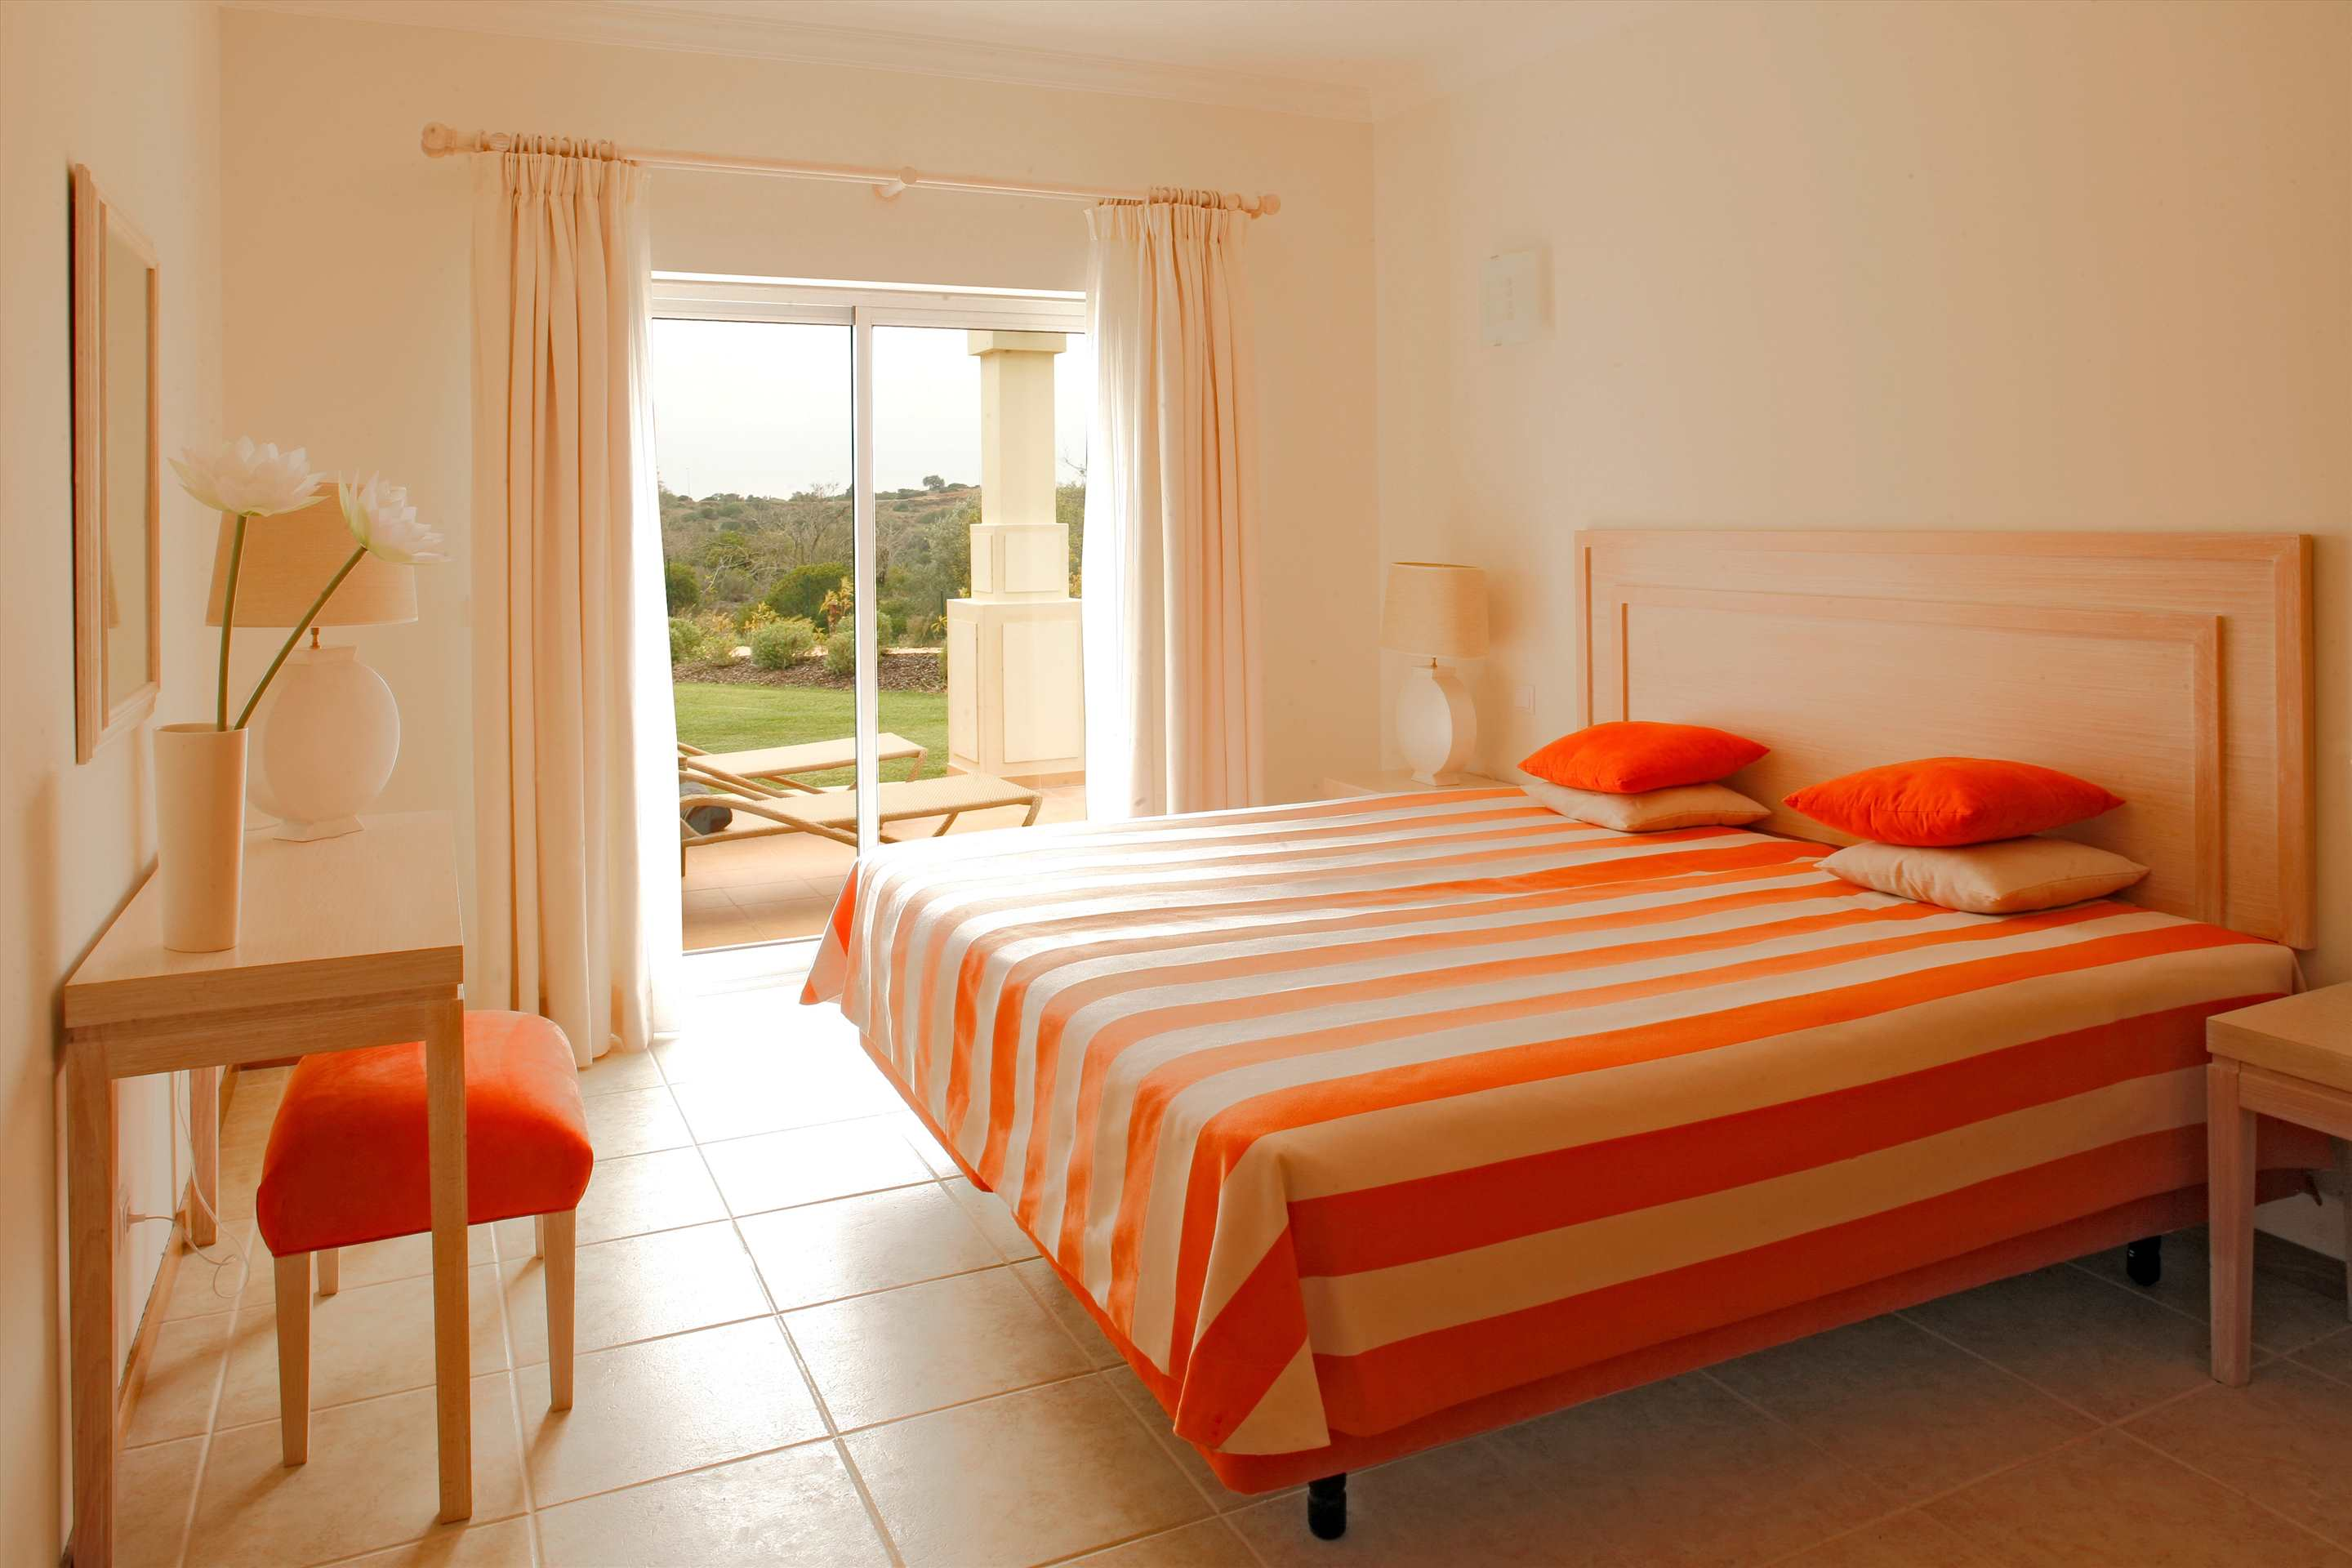 Vale d'Oliveiras 1 Bed Suite Garden View , Bed & Breakfast, 1 bedroom apartment in Vale d'Oliveiras Resort & Spa, Algarve Photo #4